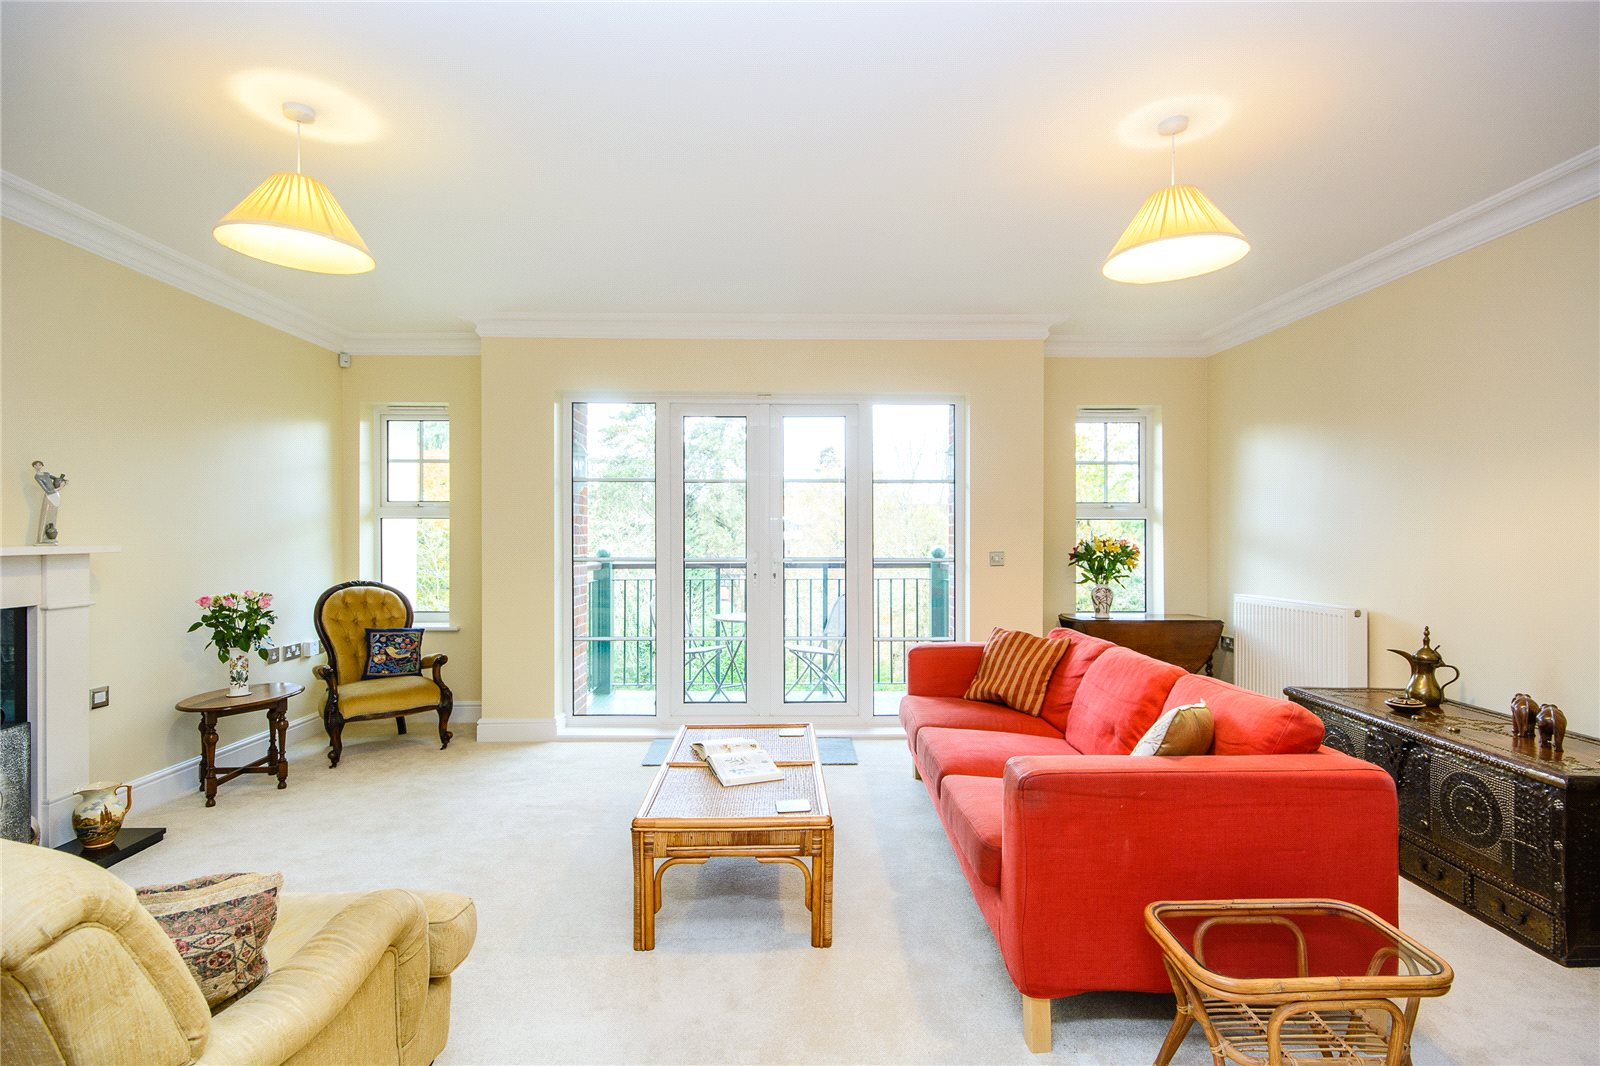 Additional photo for property listing at Crompton Hall, South Park, Gerrards Cross, Buckinghamshire, SL9 Gerrards Cross, Ingiltere